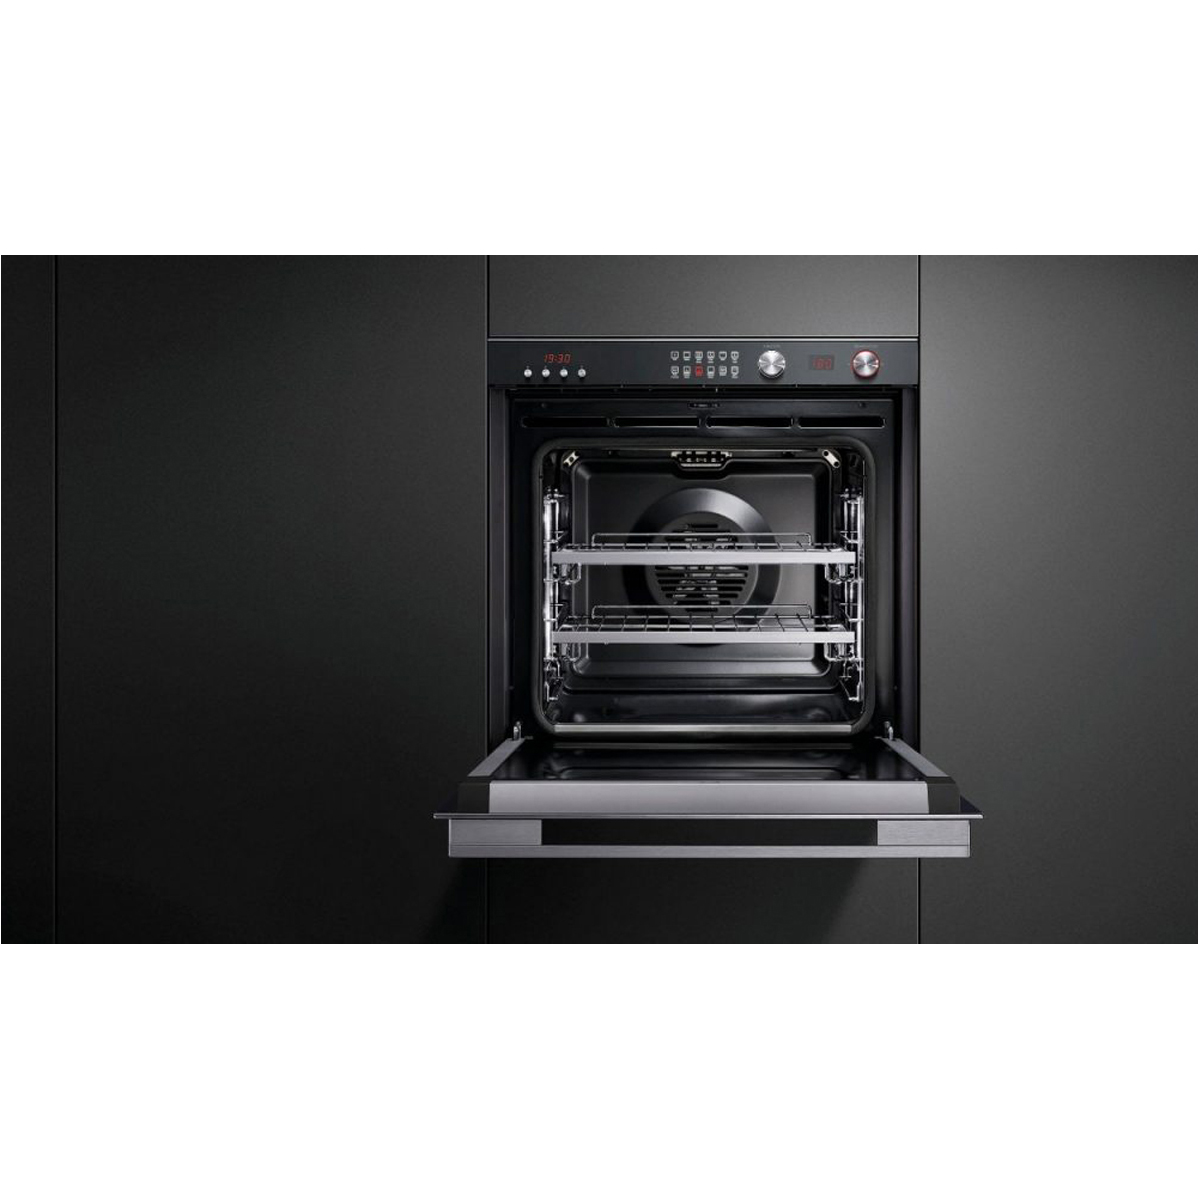 Fisher & Paykel OB60SL11DEPB1 Pyrolytic Oven 46880